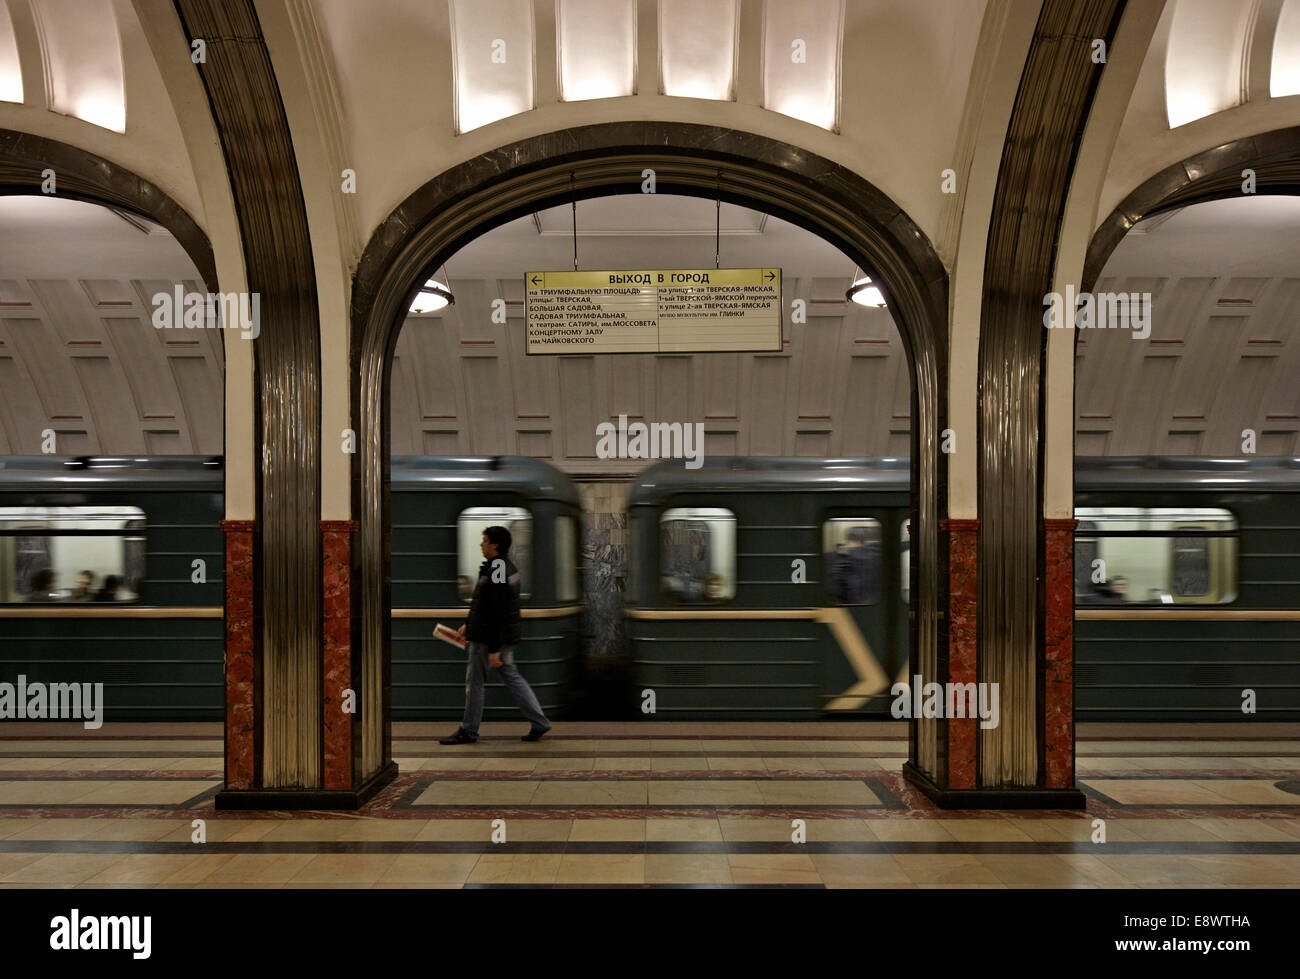 Man on train platform in Moscow Metro, Moscow, Russia. - Stock Image